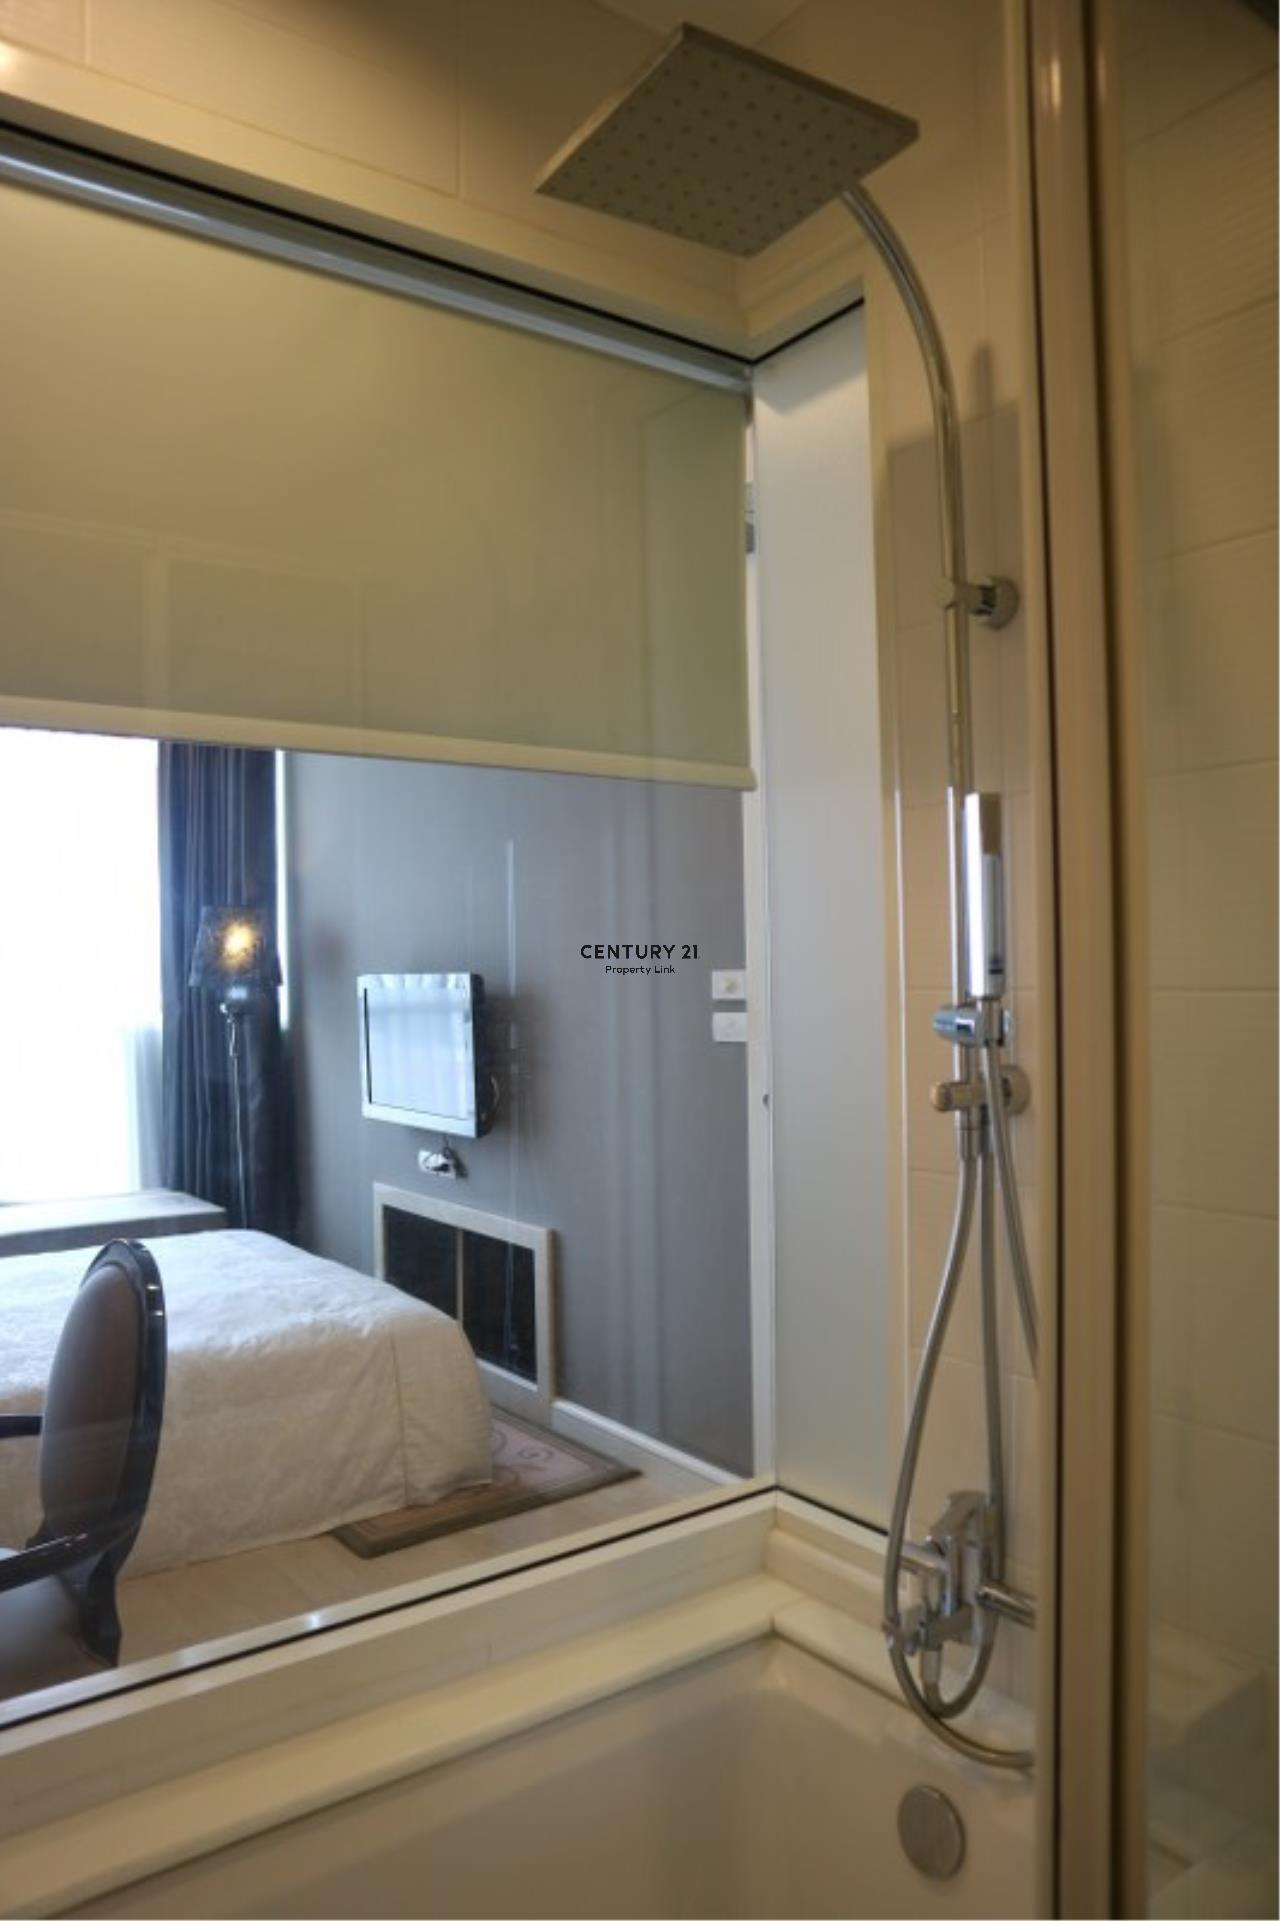 Century21 Property Link Agency's 39-CC-61179 Ideo Mix Phaholyothin Near BTS Saphan Kwai Phaholyothin Road.Room For Sale 1 Bedroom Sale price 5 MB.  10